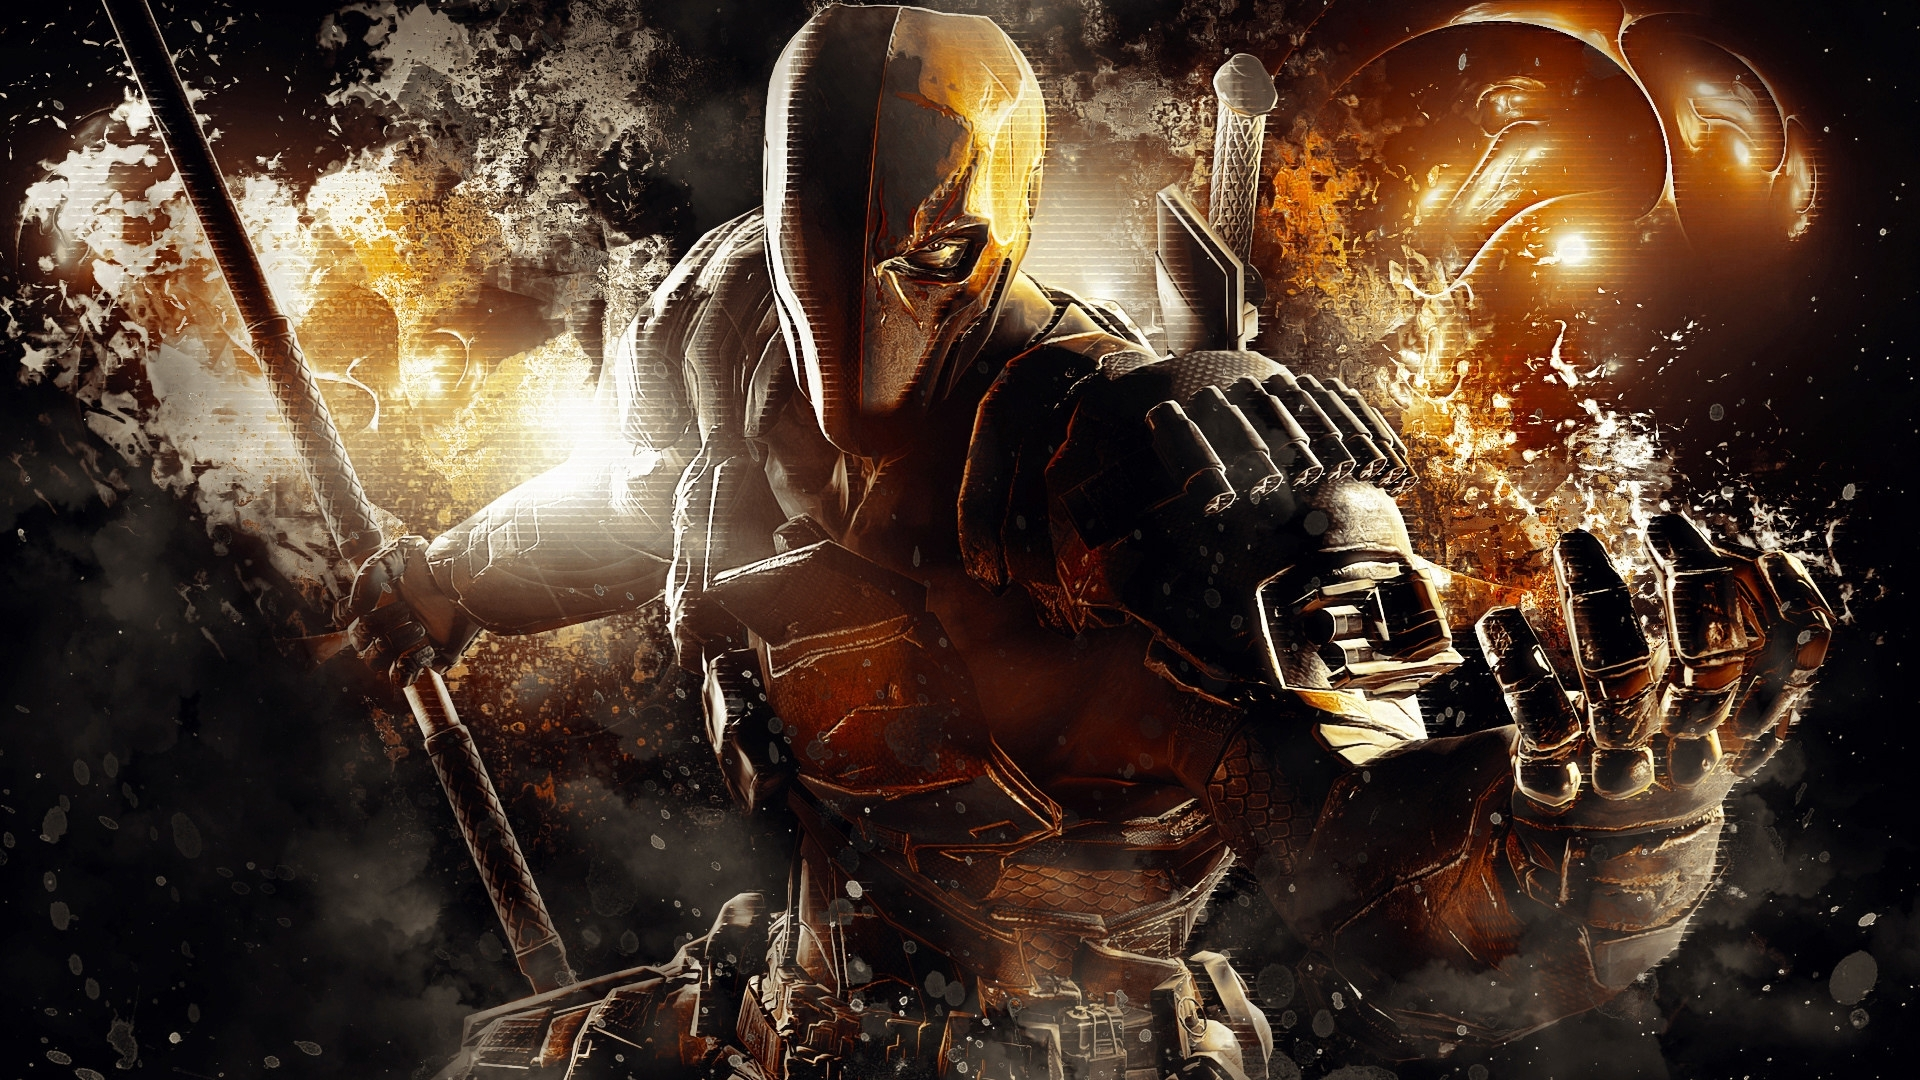 hd gaming wallpapers 1080p (77+ images)